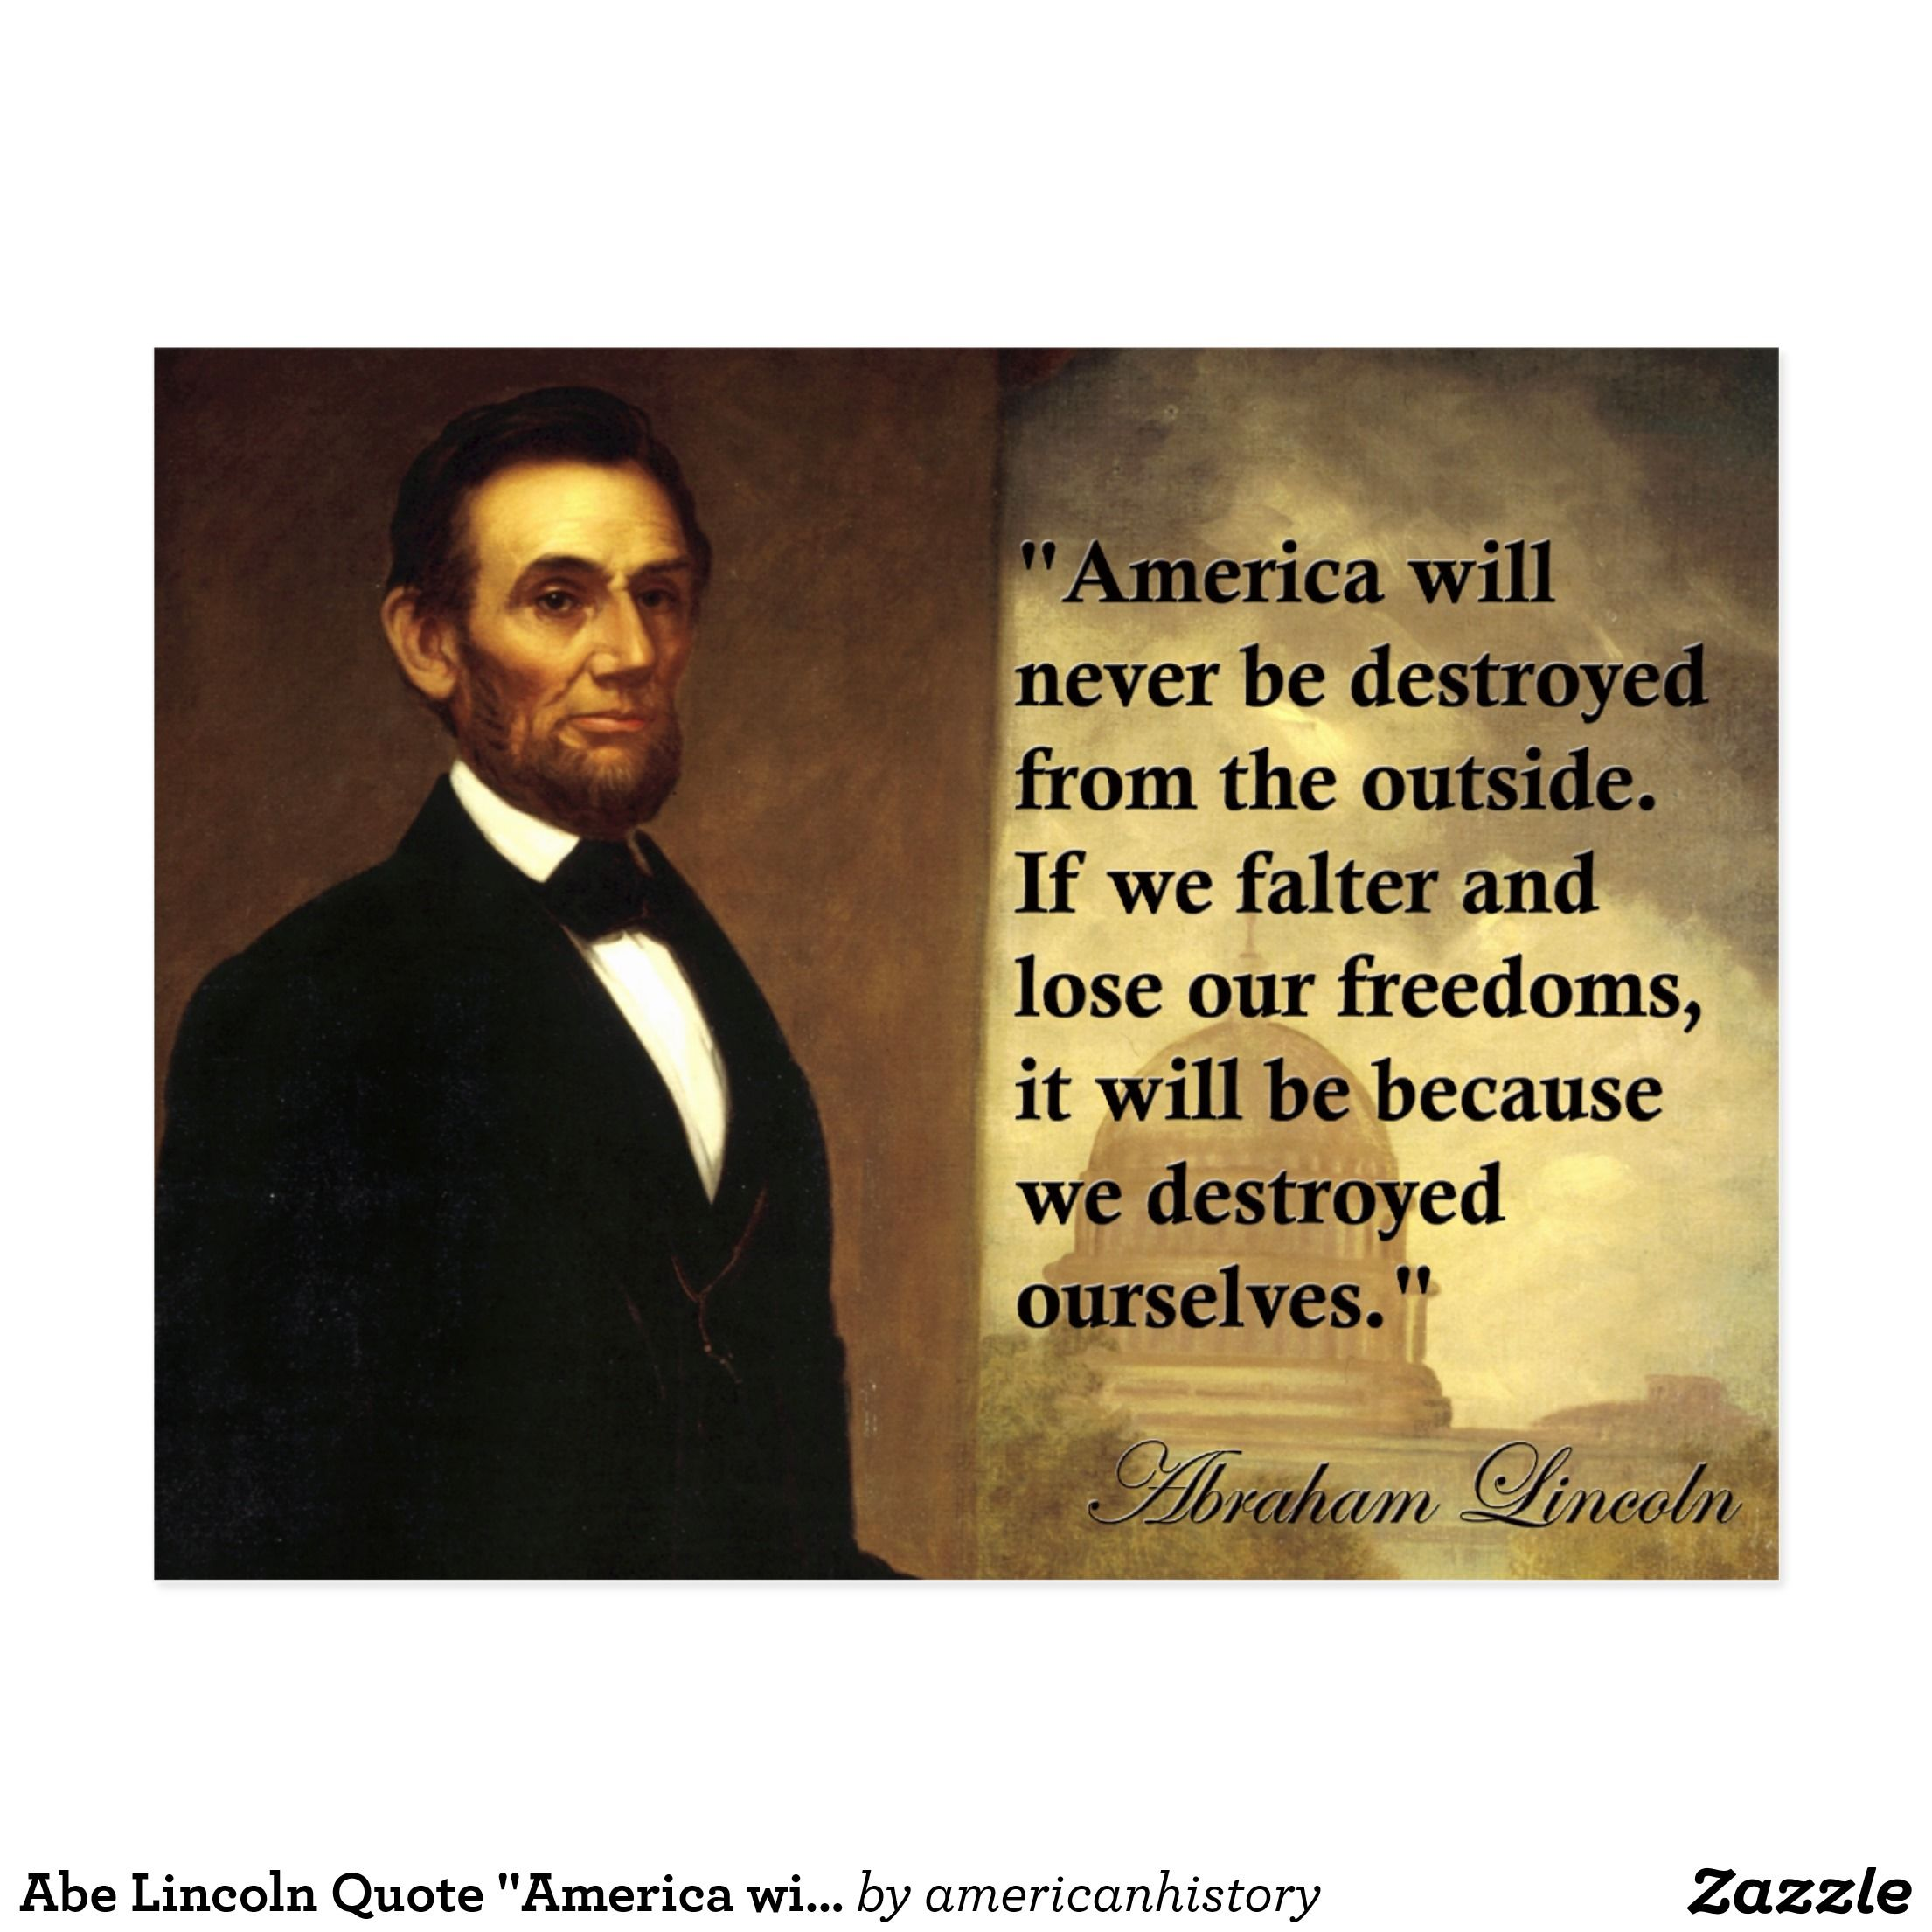 """Abe Lincoln Quote """"America will never be..."""" Postcard"""